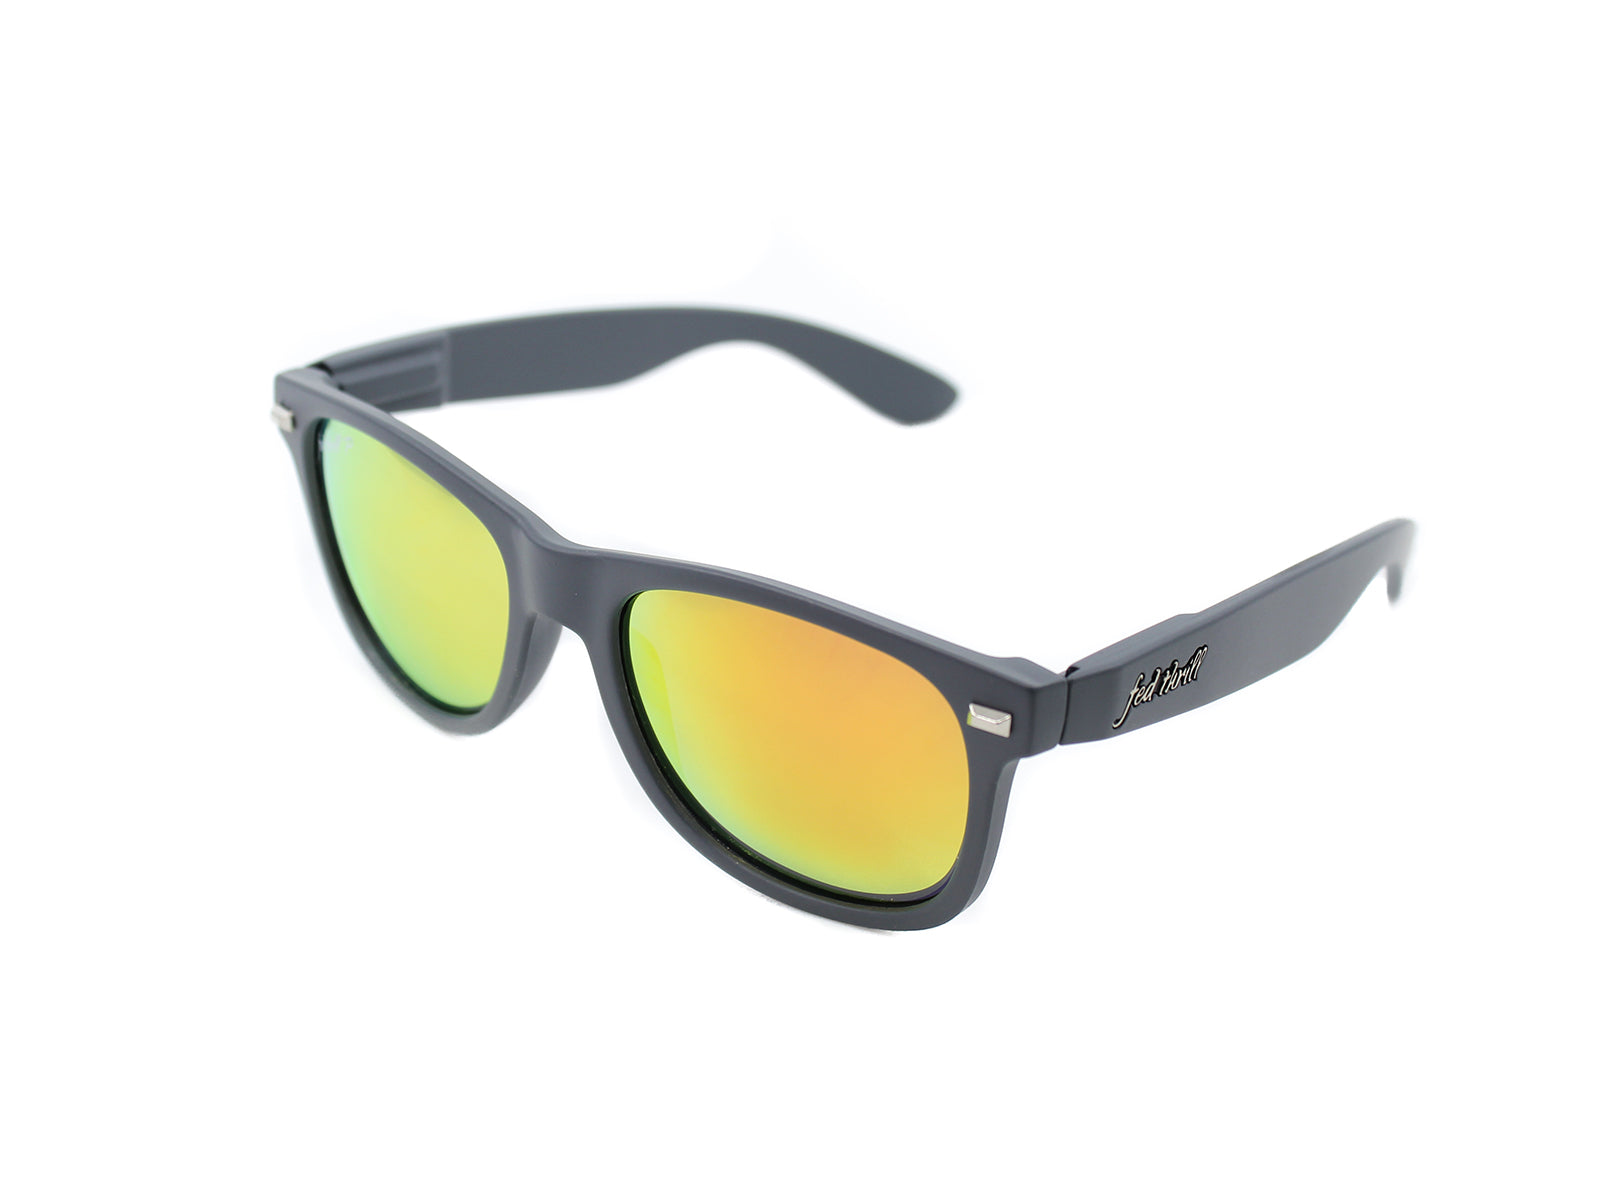 Fultons - Gryphons: Matte Gray / Mirrored Orange Polarized